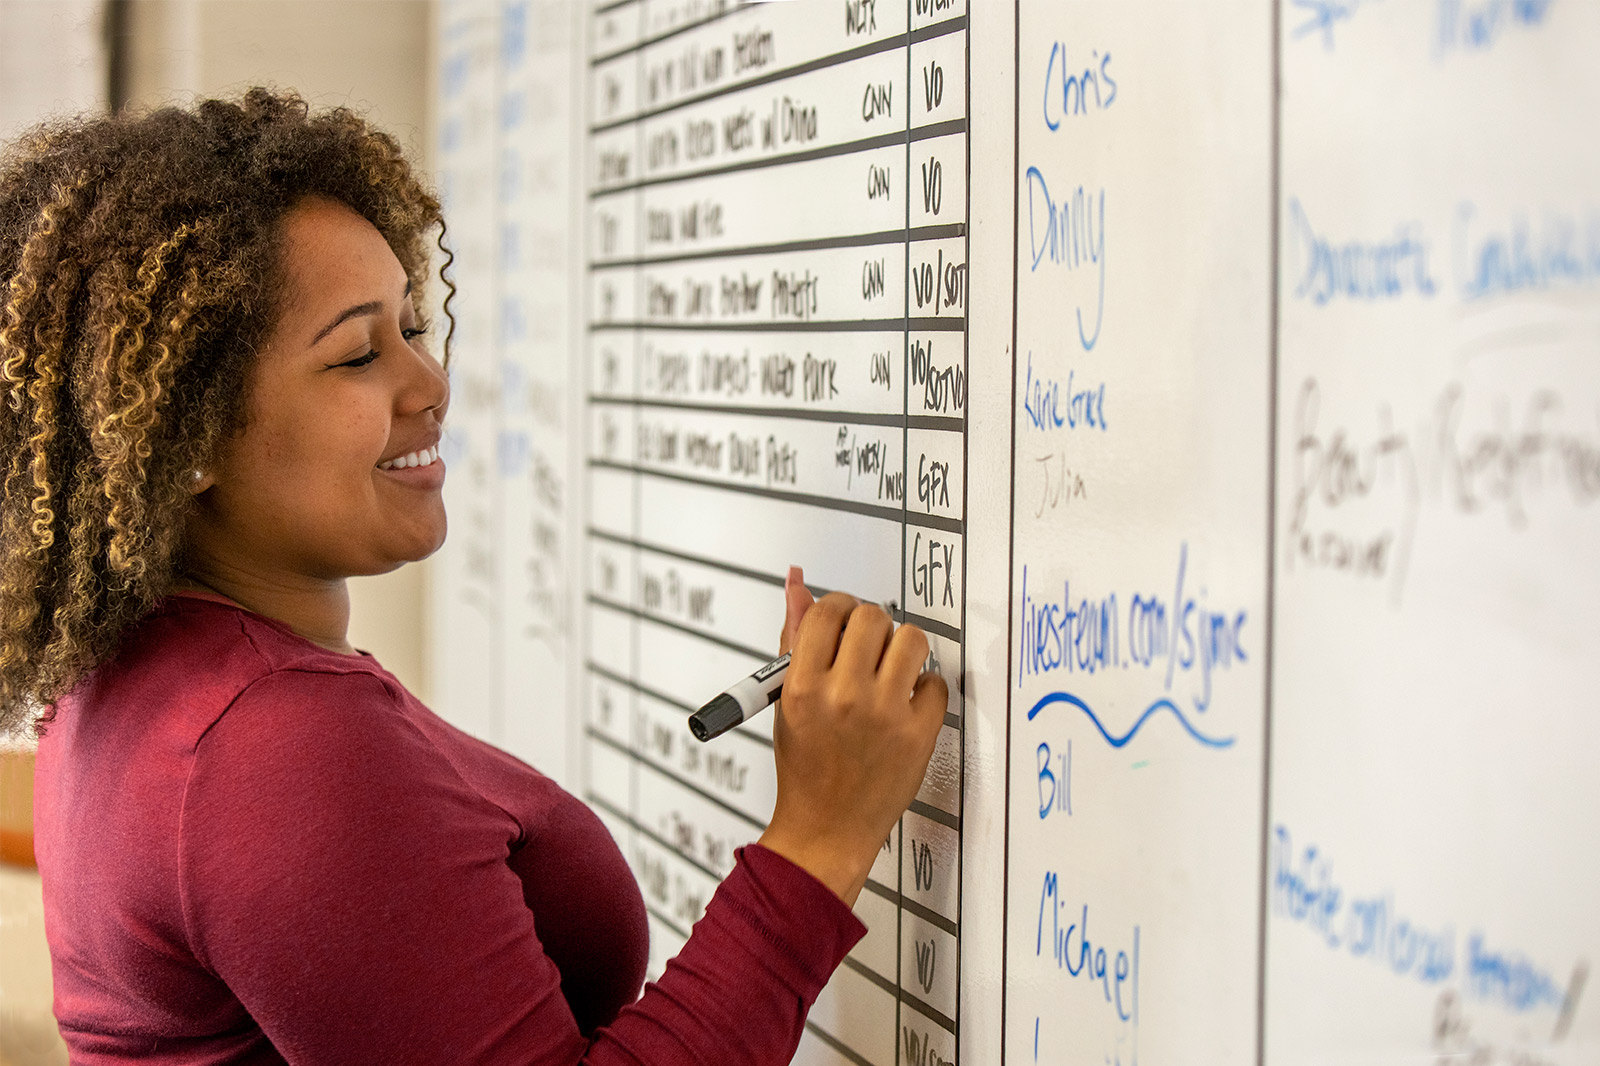 A journalism student smiles while filling in the day's television news production schedule on a dry erase board.